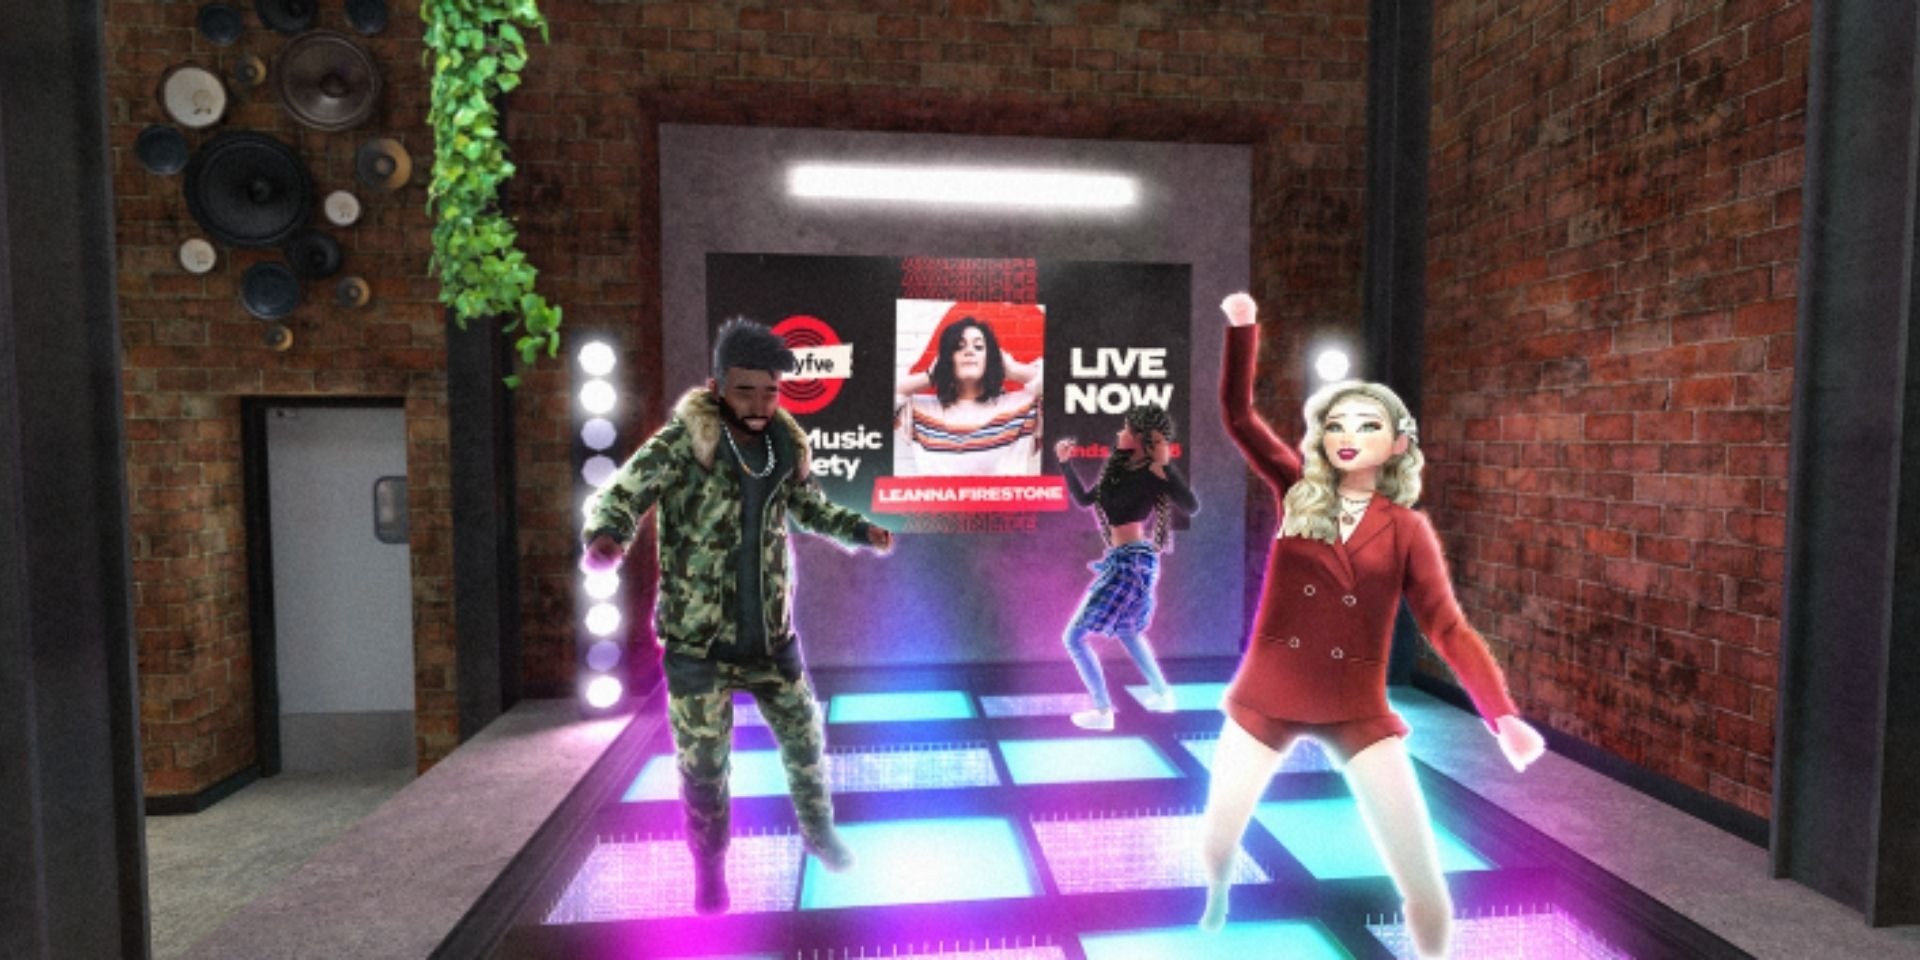 Tencent-backed startup Instrumental partners with virtual world 'Avakin Life' to launch digital music venue